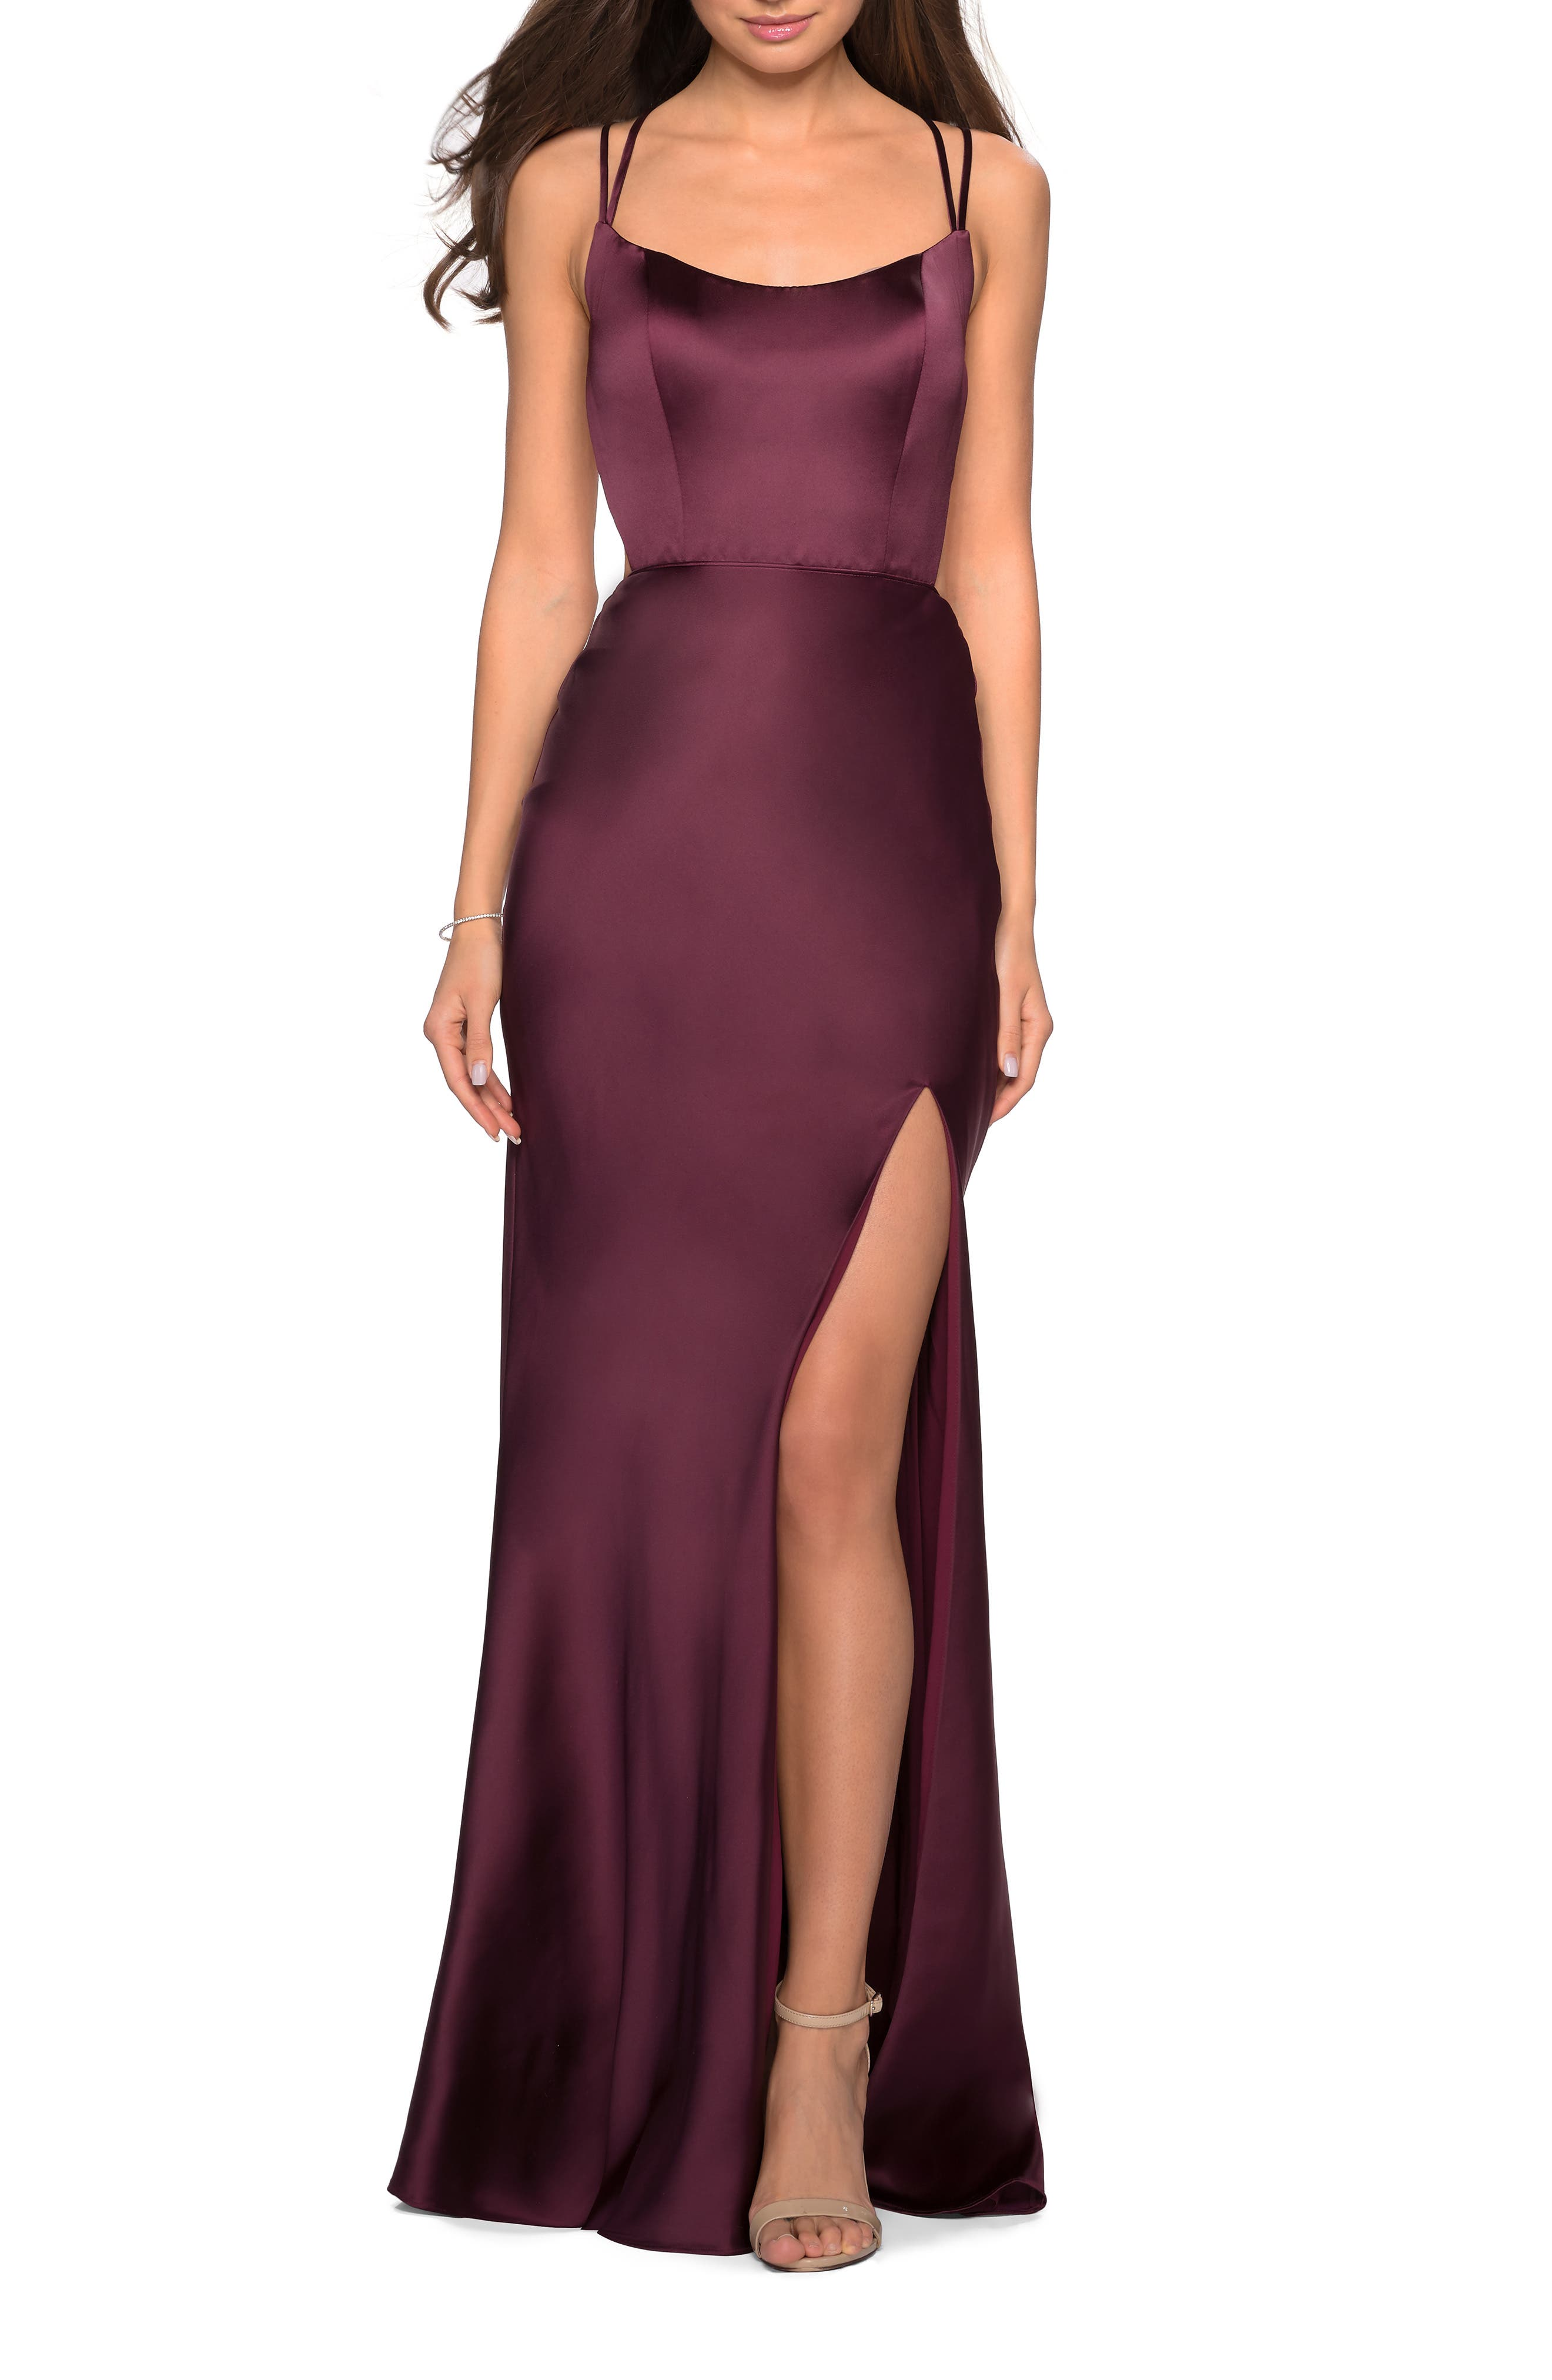 Strappy Back Fitted Satin Evening Dress, Main, color, WINE